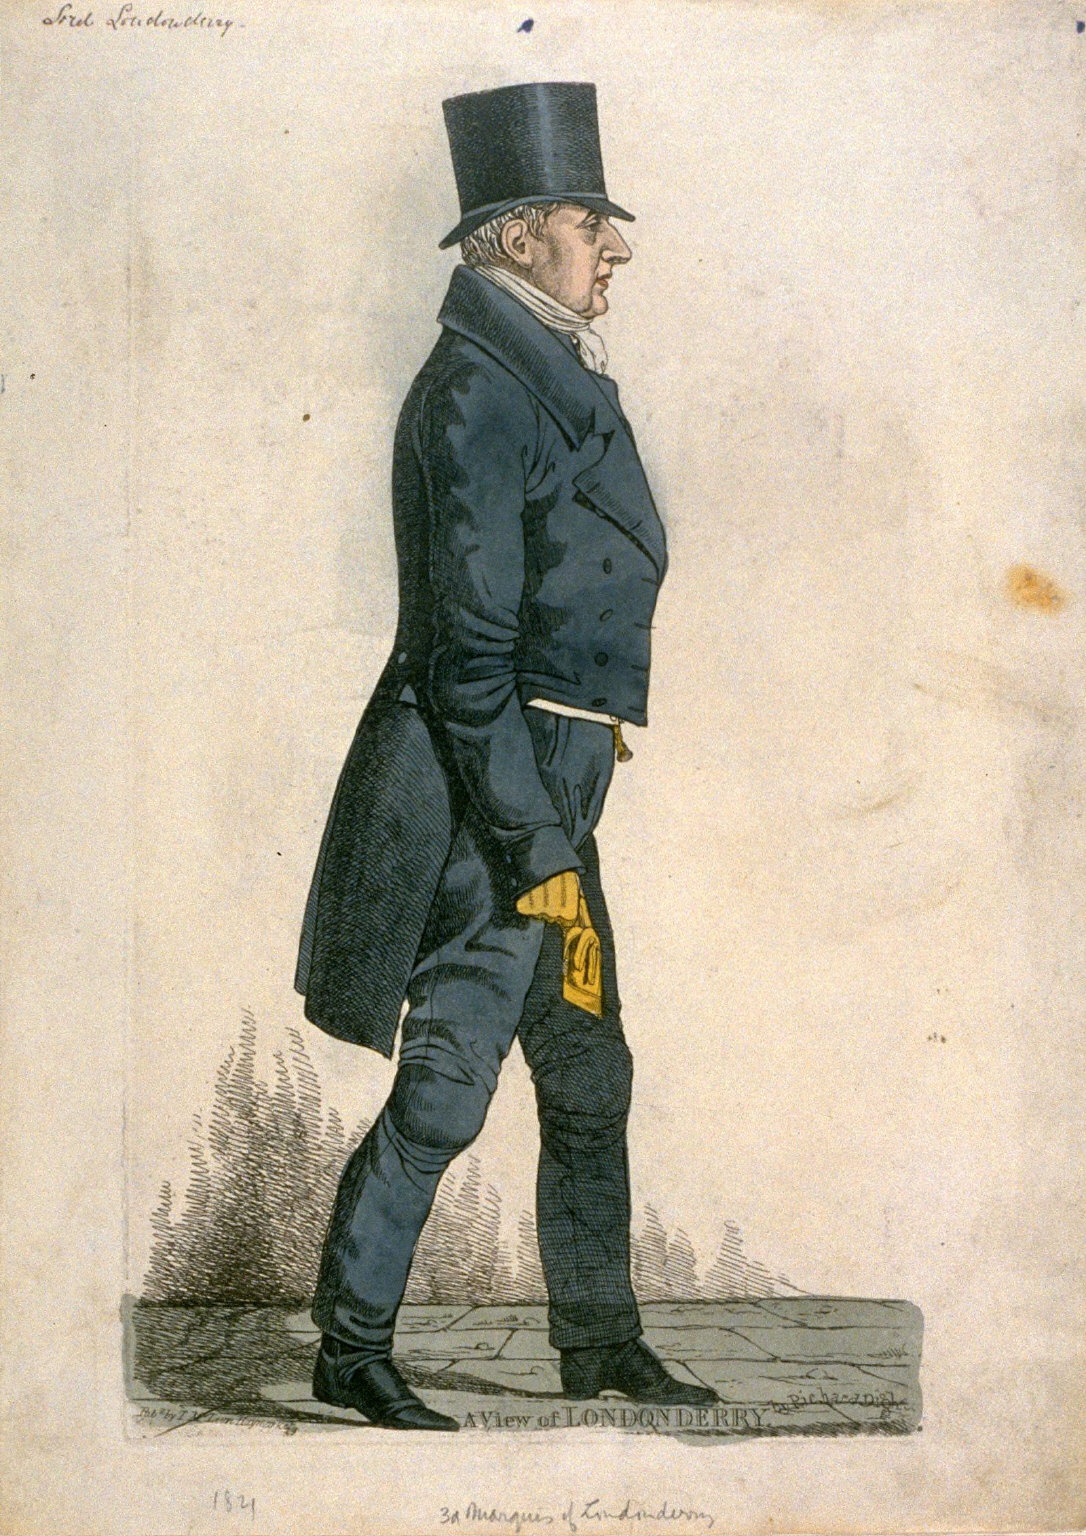 """Caricature (full figure) of Third Marquis of Londonderry - """"A View of Londonderry"""""""